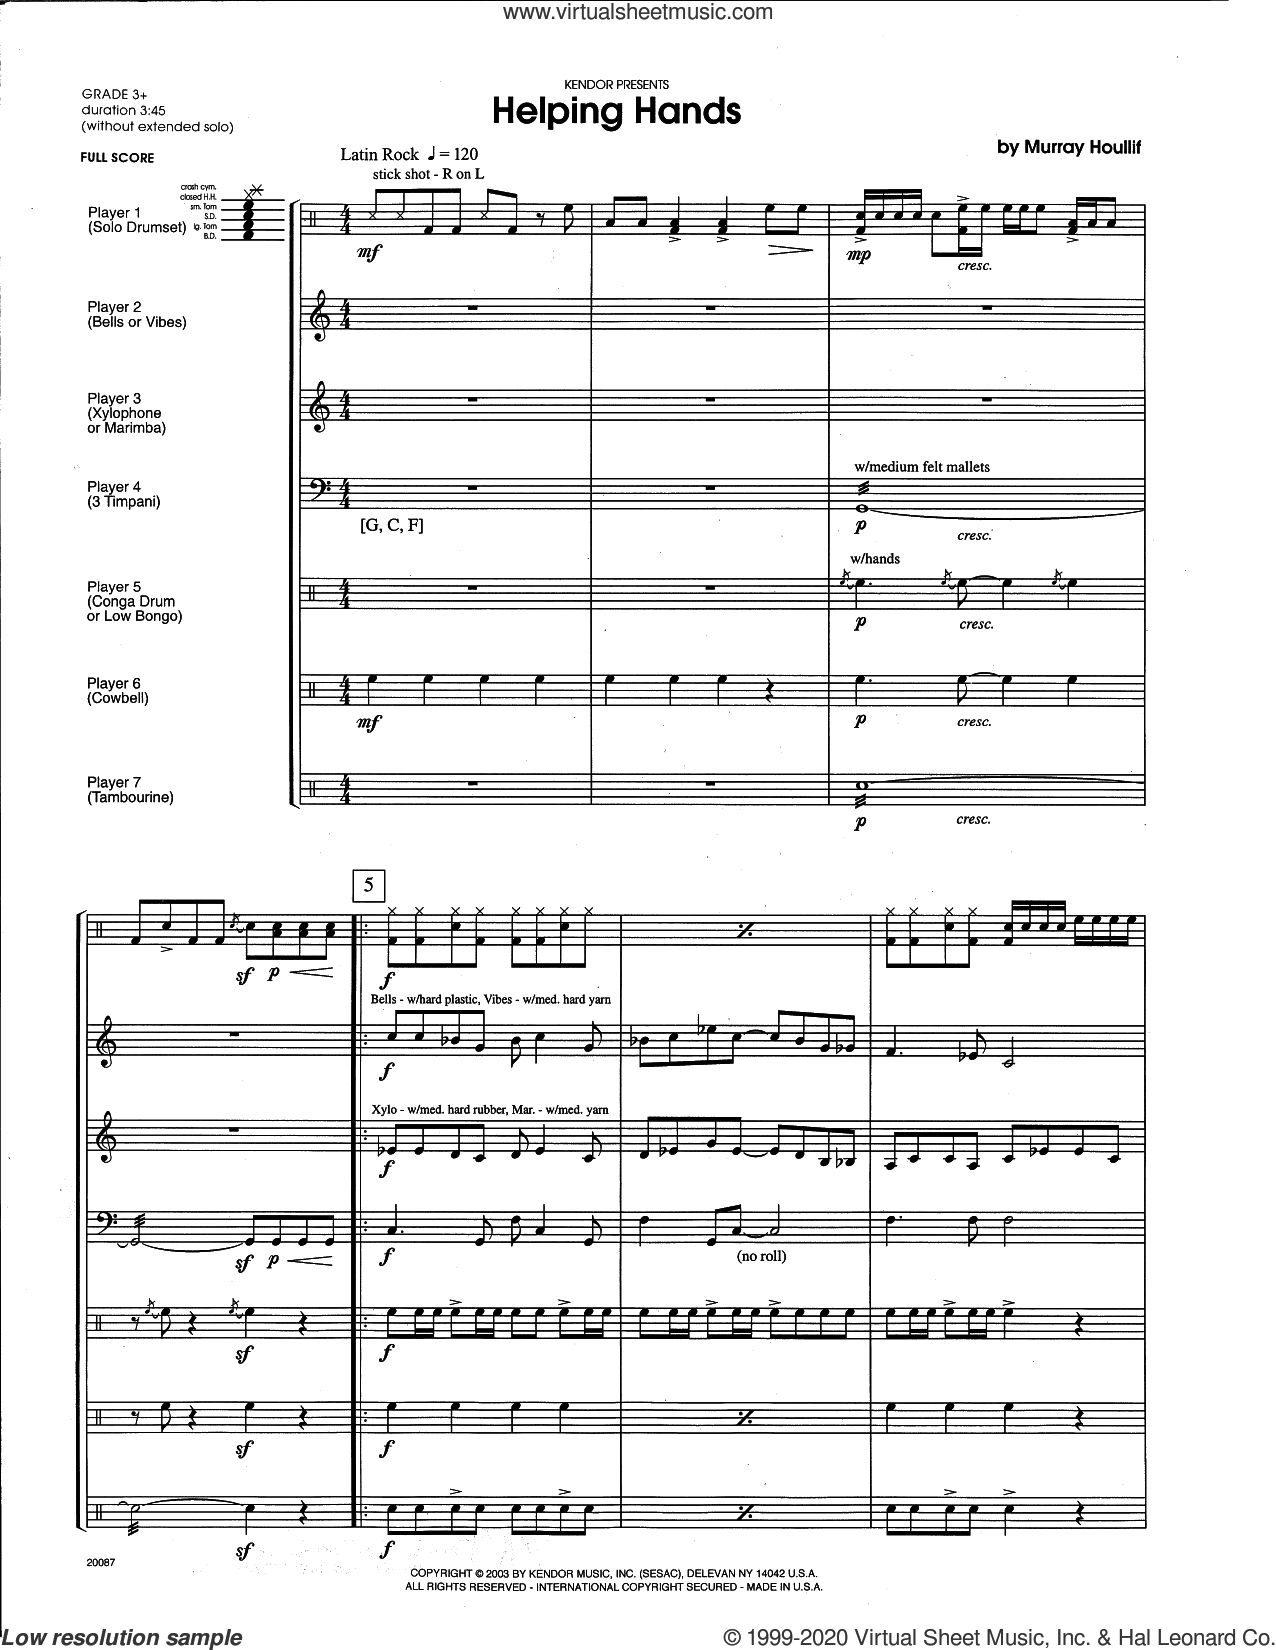 Helping Hands (COMPLETE) sheet music for percussions by Houllif, intermediate skill level